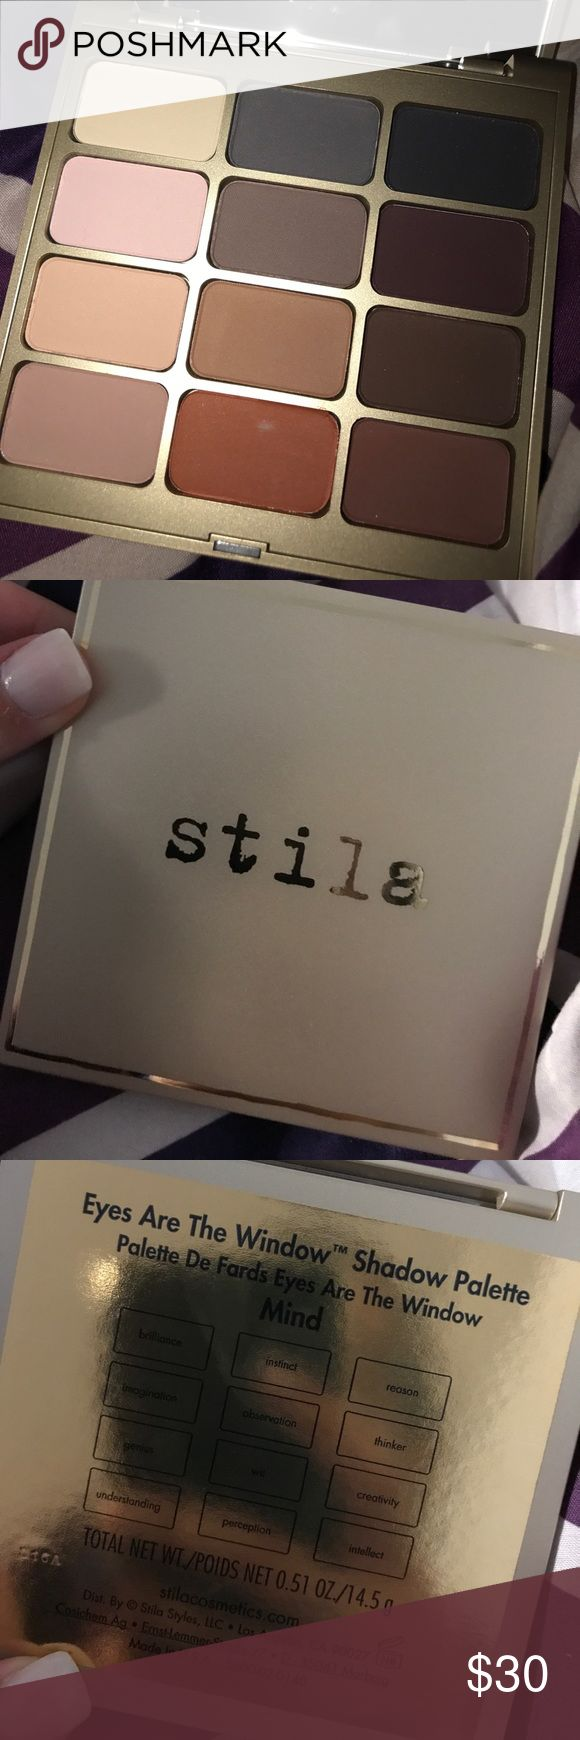 "Stila make up palette Never used Stila ""eyes of wonder"" mind makeup palette. All neutral colors includes a mirror. Stila Makeup Eyeshadow"